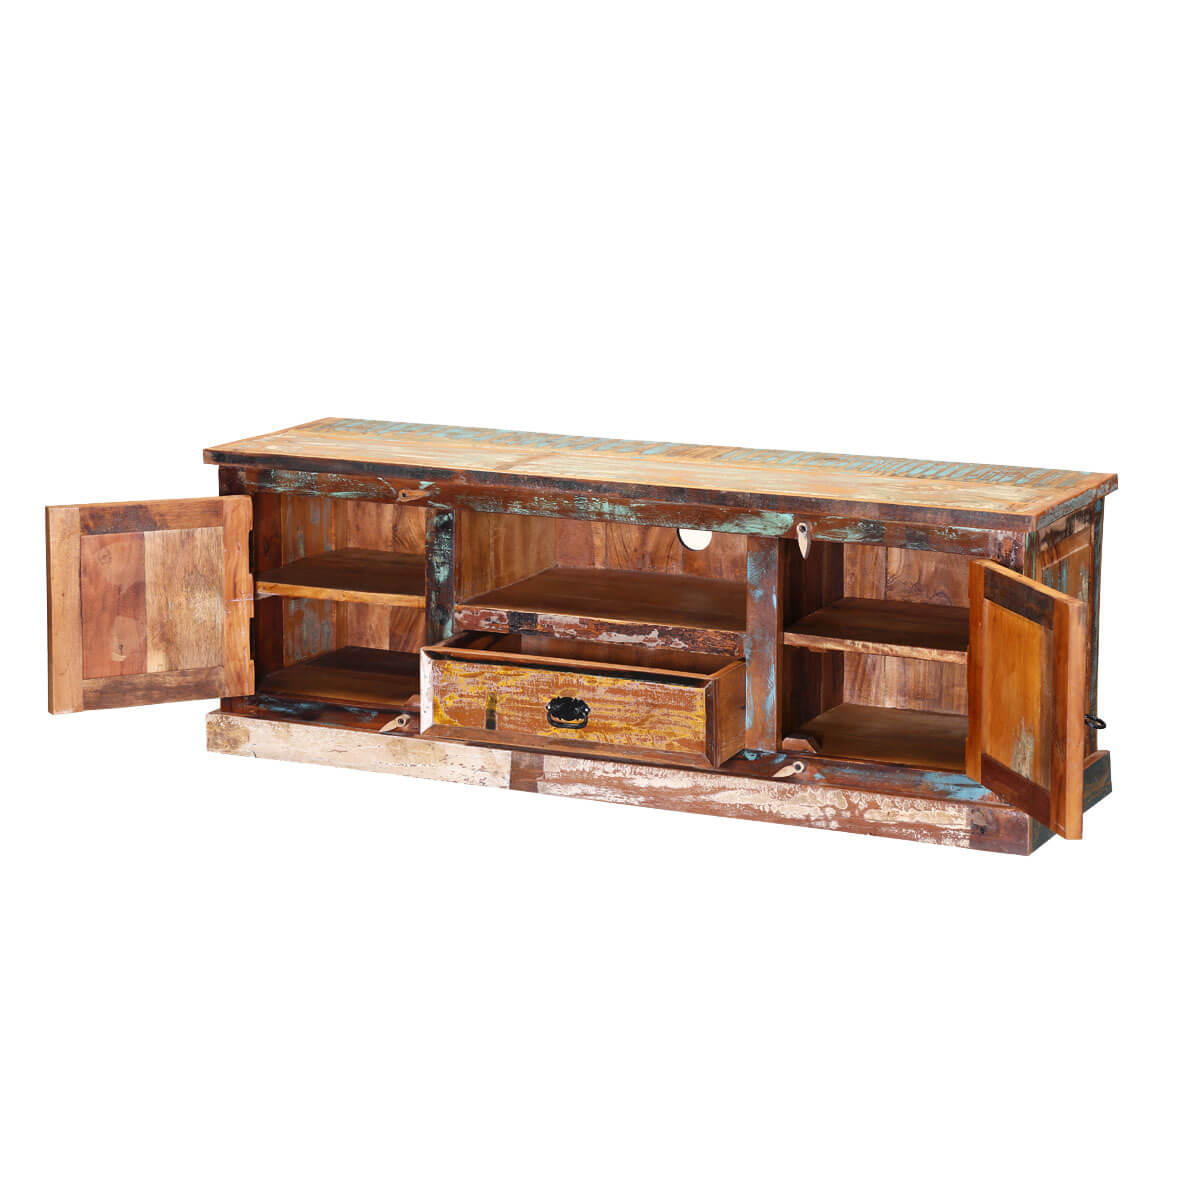 Rustic pioneer reclaimed wood tv console entertainment cabinet